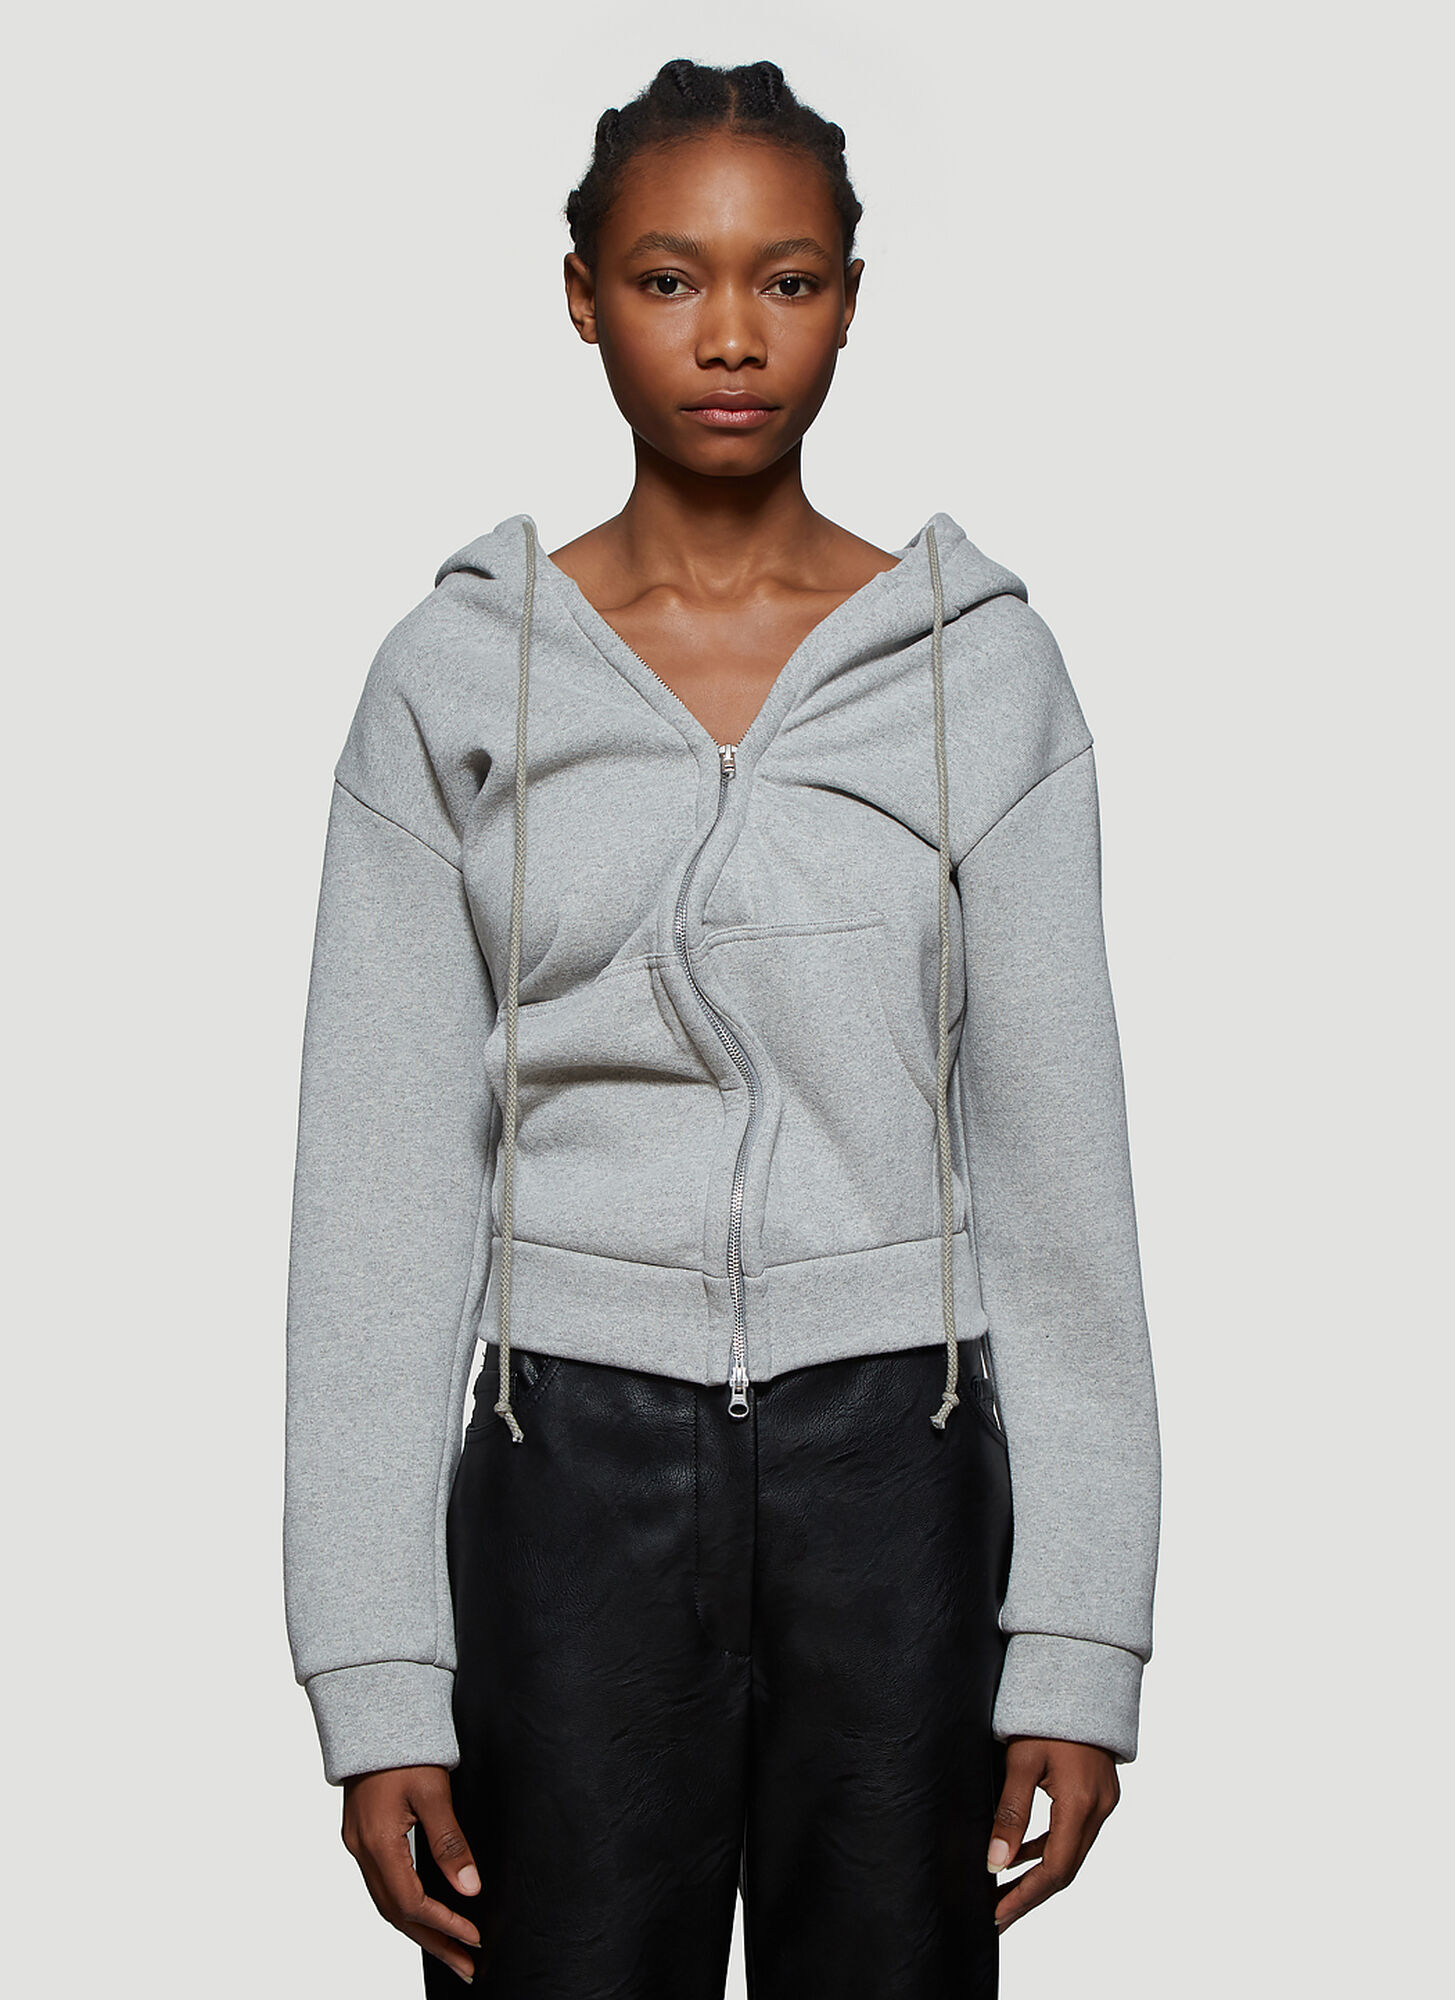 Vaquera Twisted Hoodie in Grey